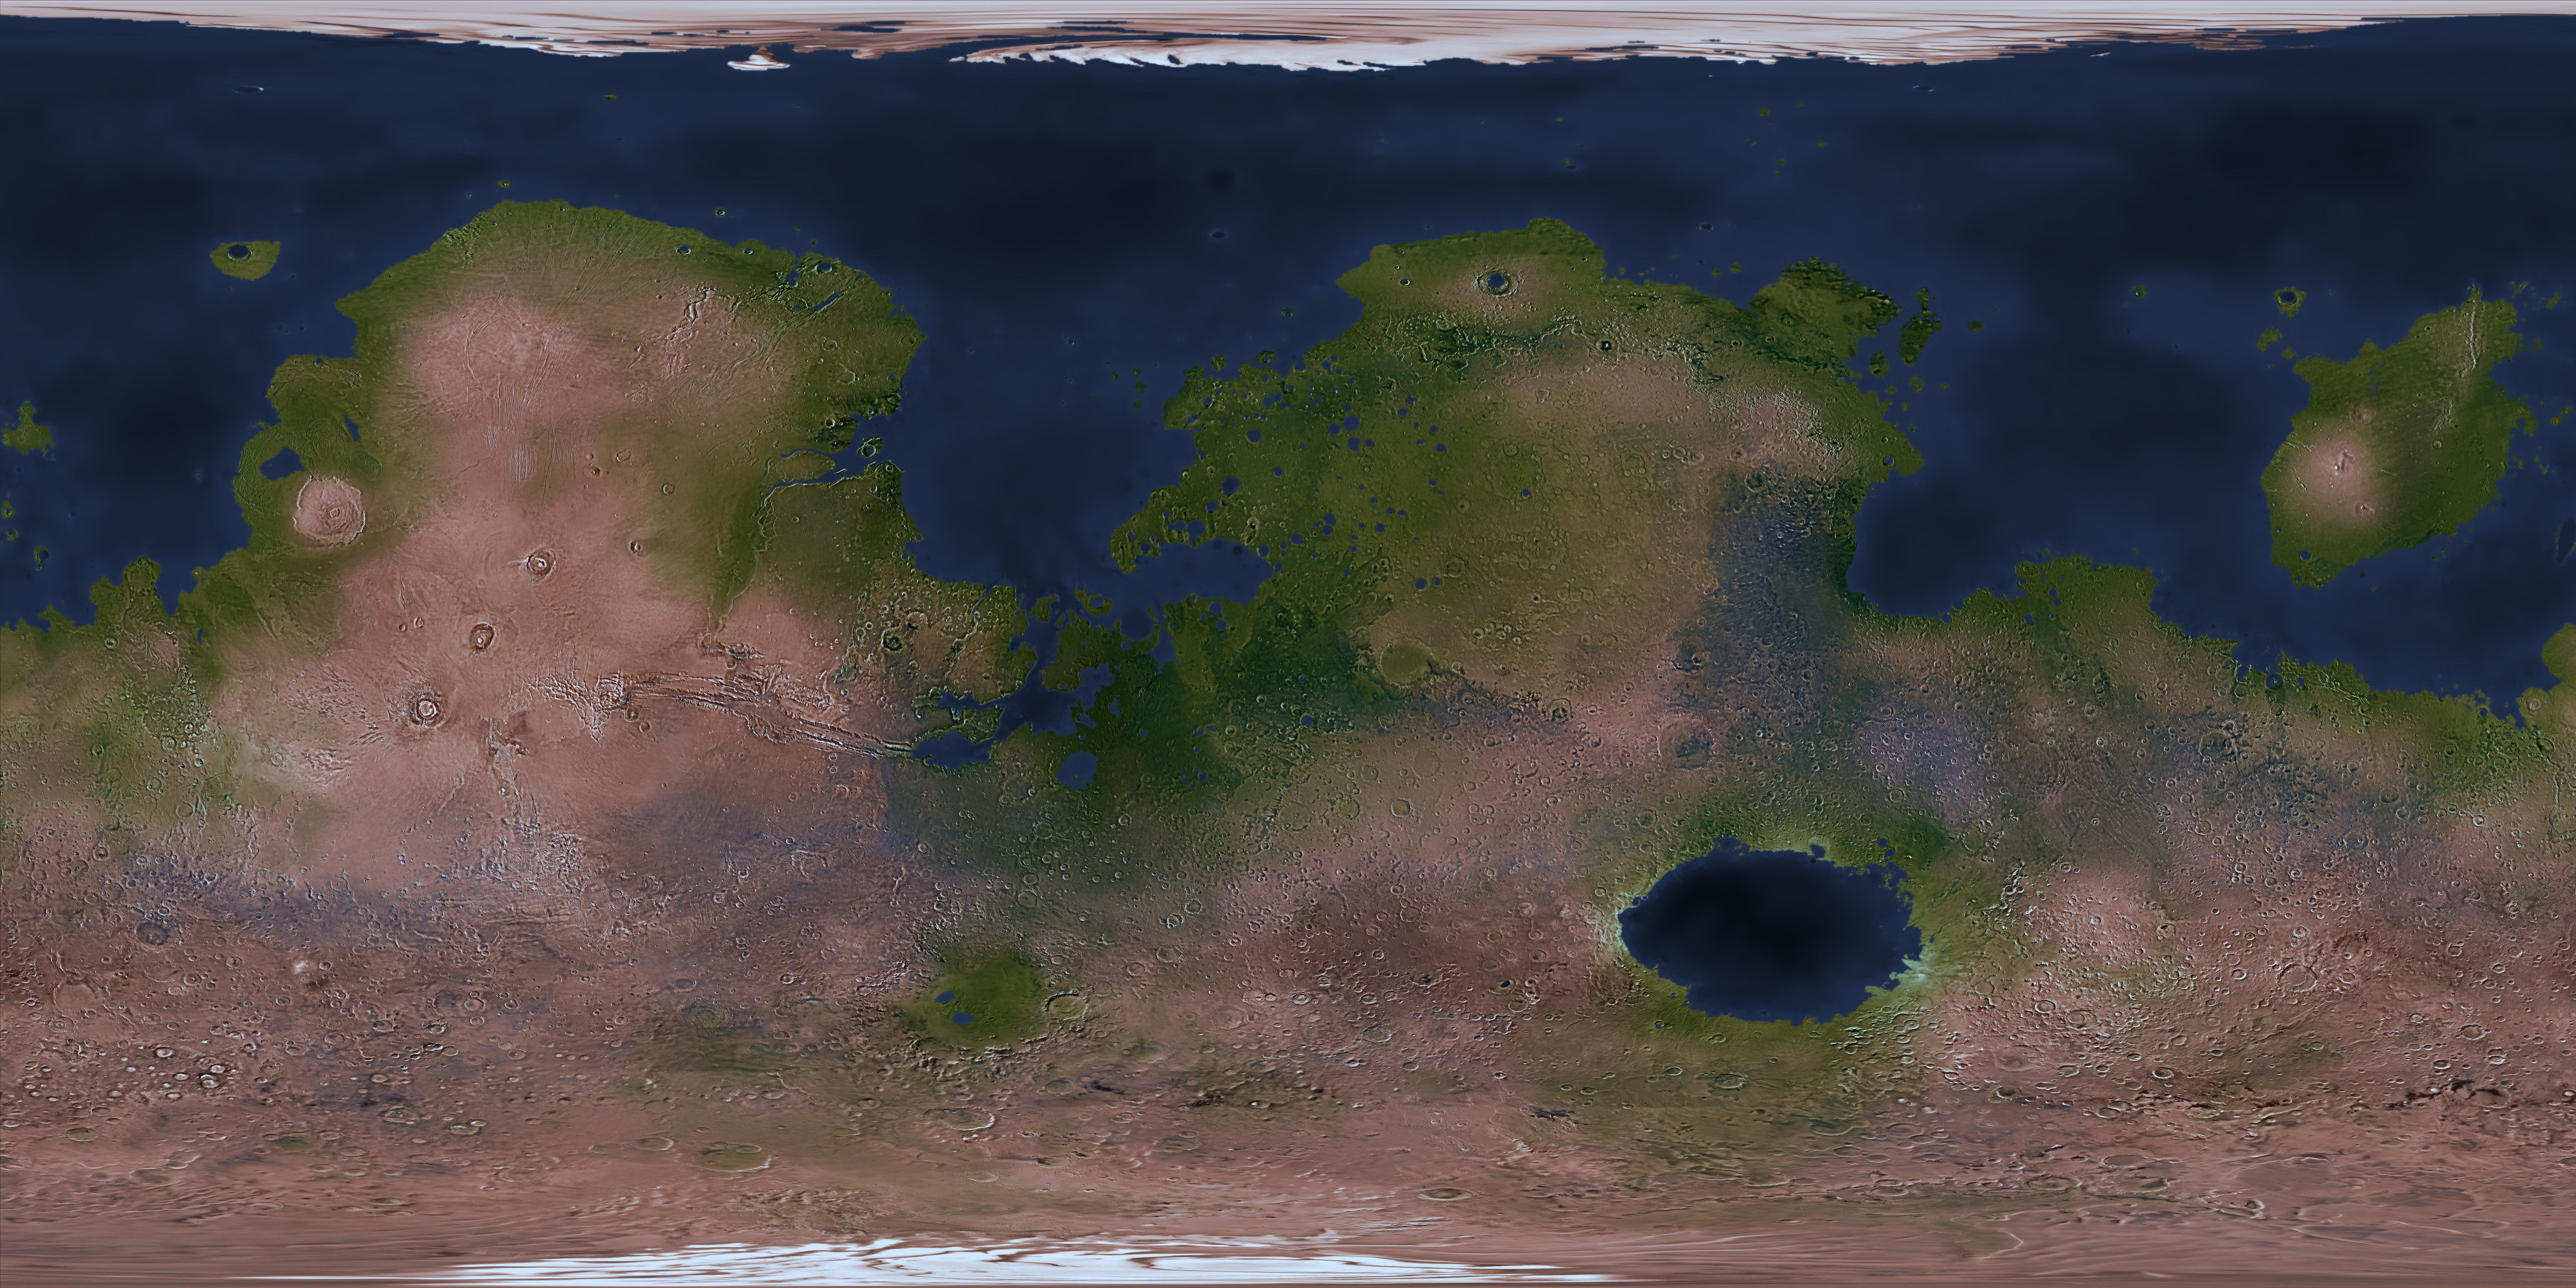 map of a, map of all, map or, on map of terraformed an